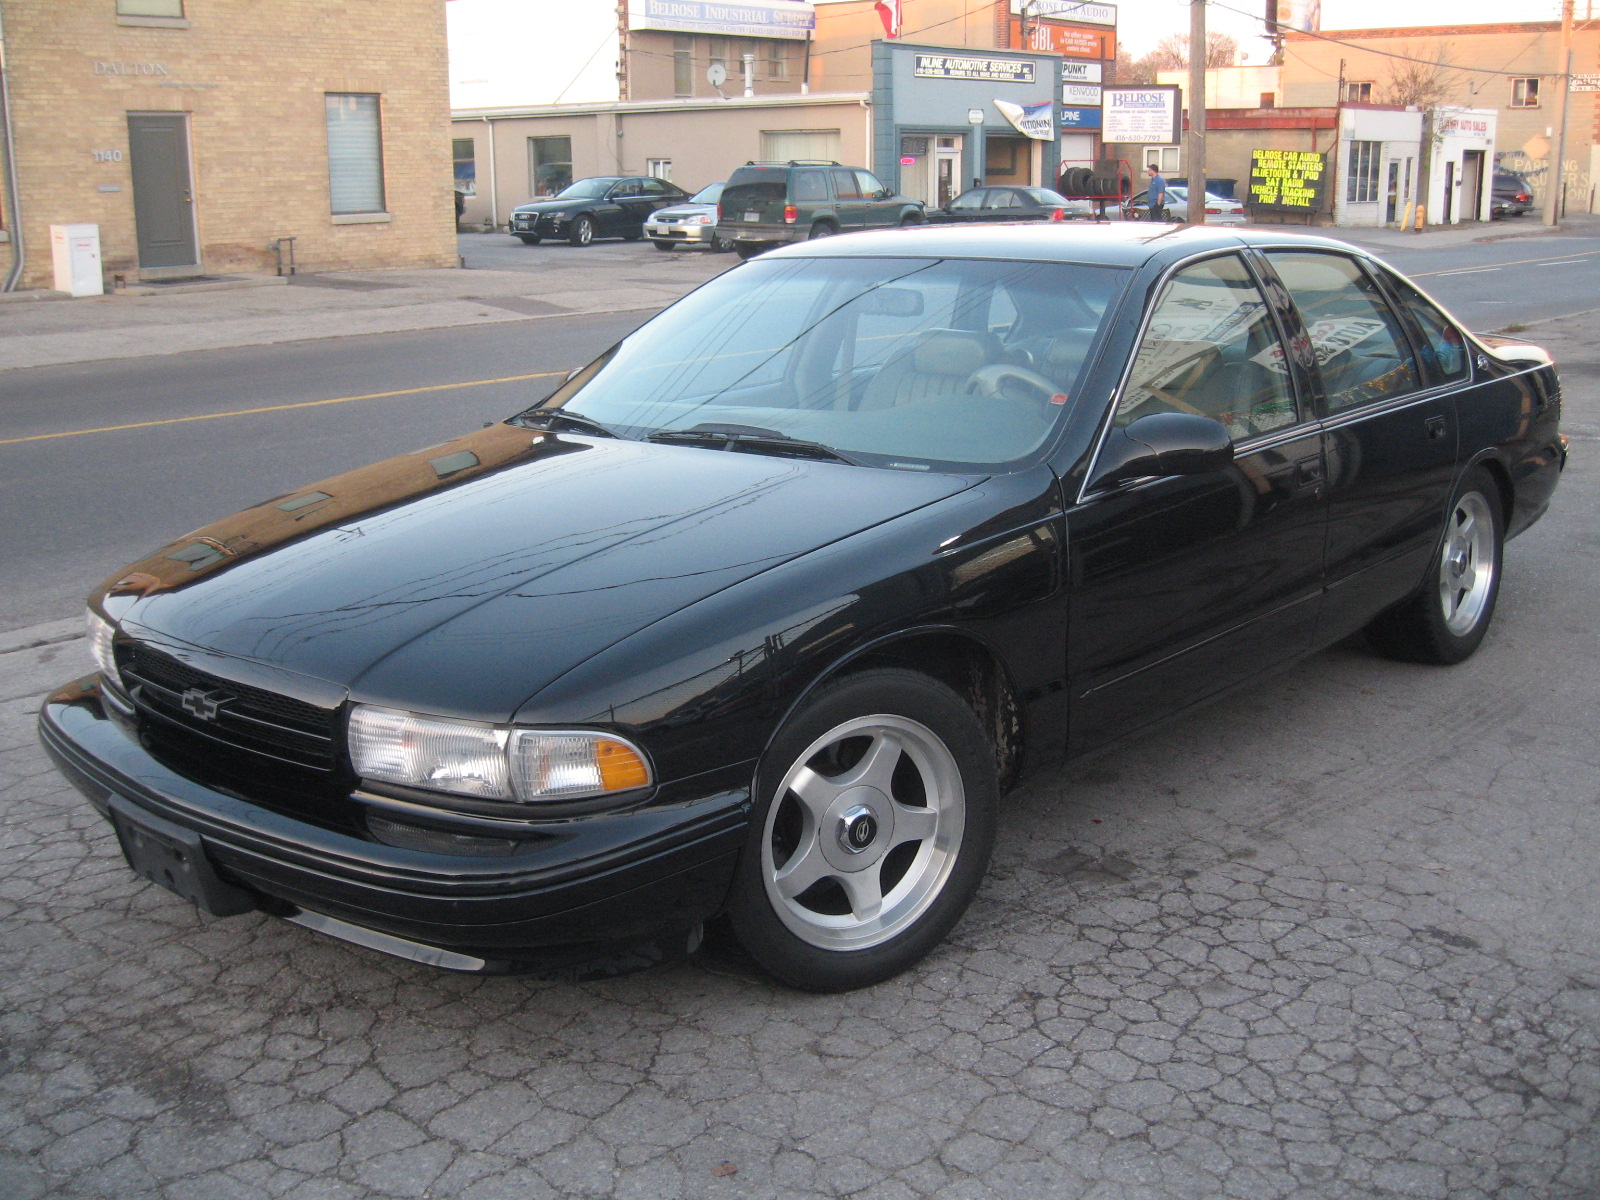 1996 Chevy Caprice For Sale 1996 Chevrolet Impala SS Sedan - City of Toronto Cars For Sale ...